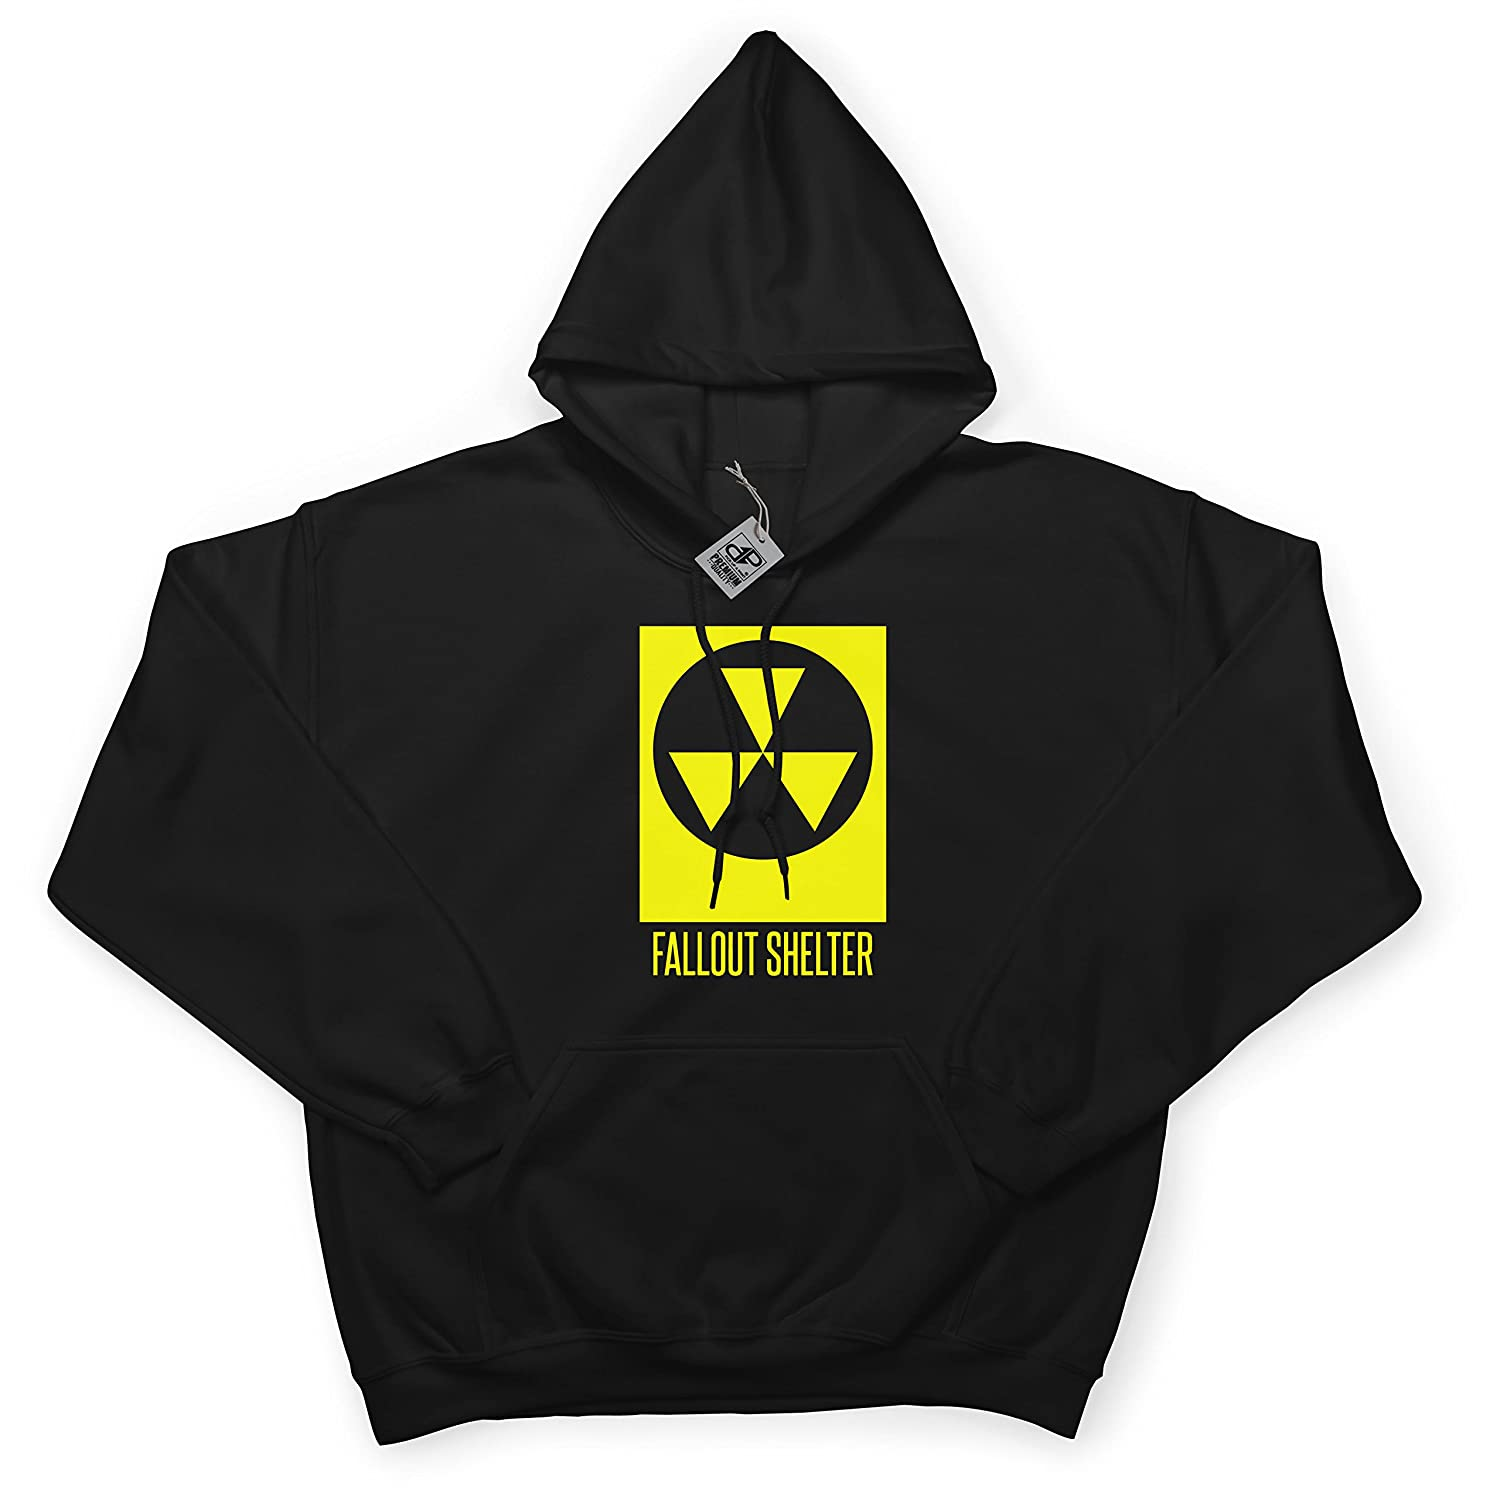 Fallout Shelter Hoodie Amazon Clothing